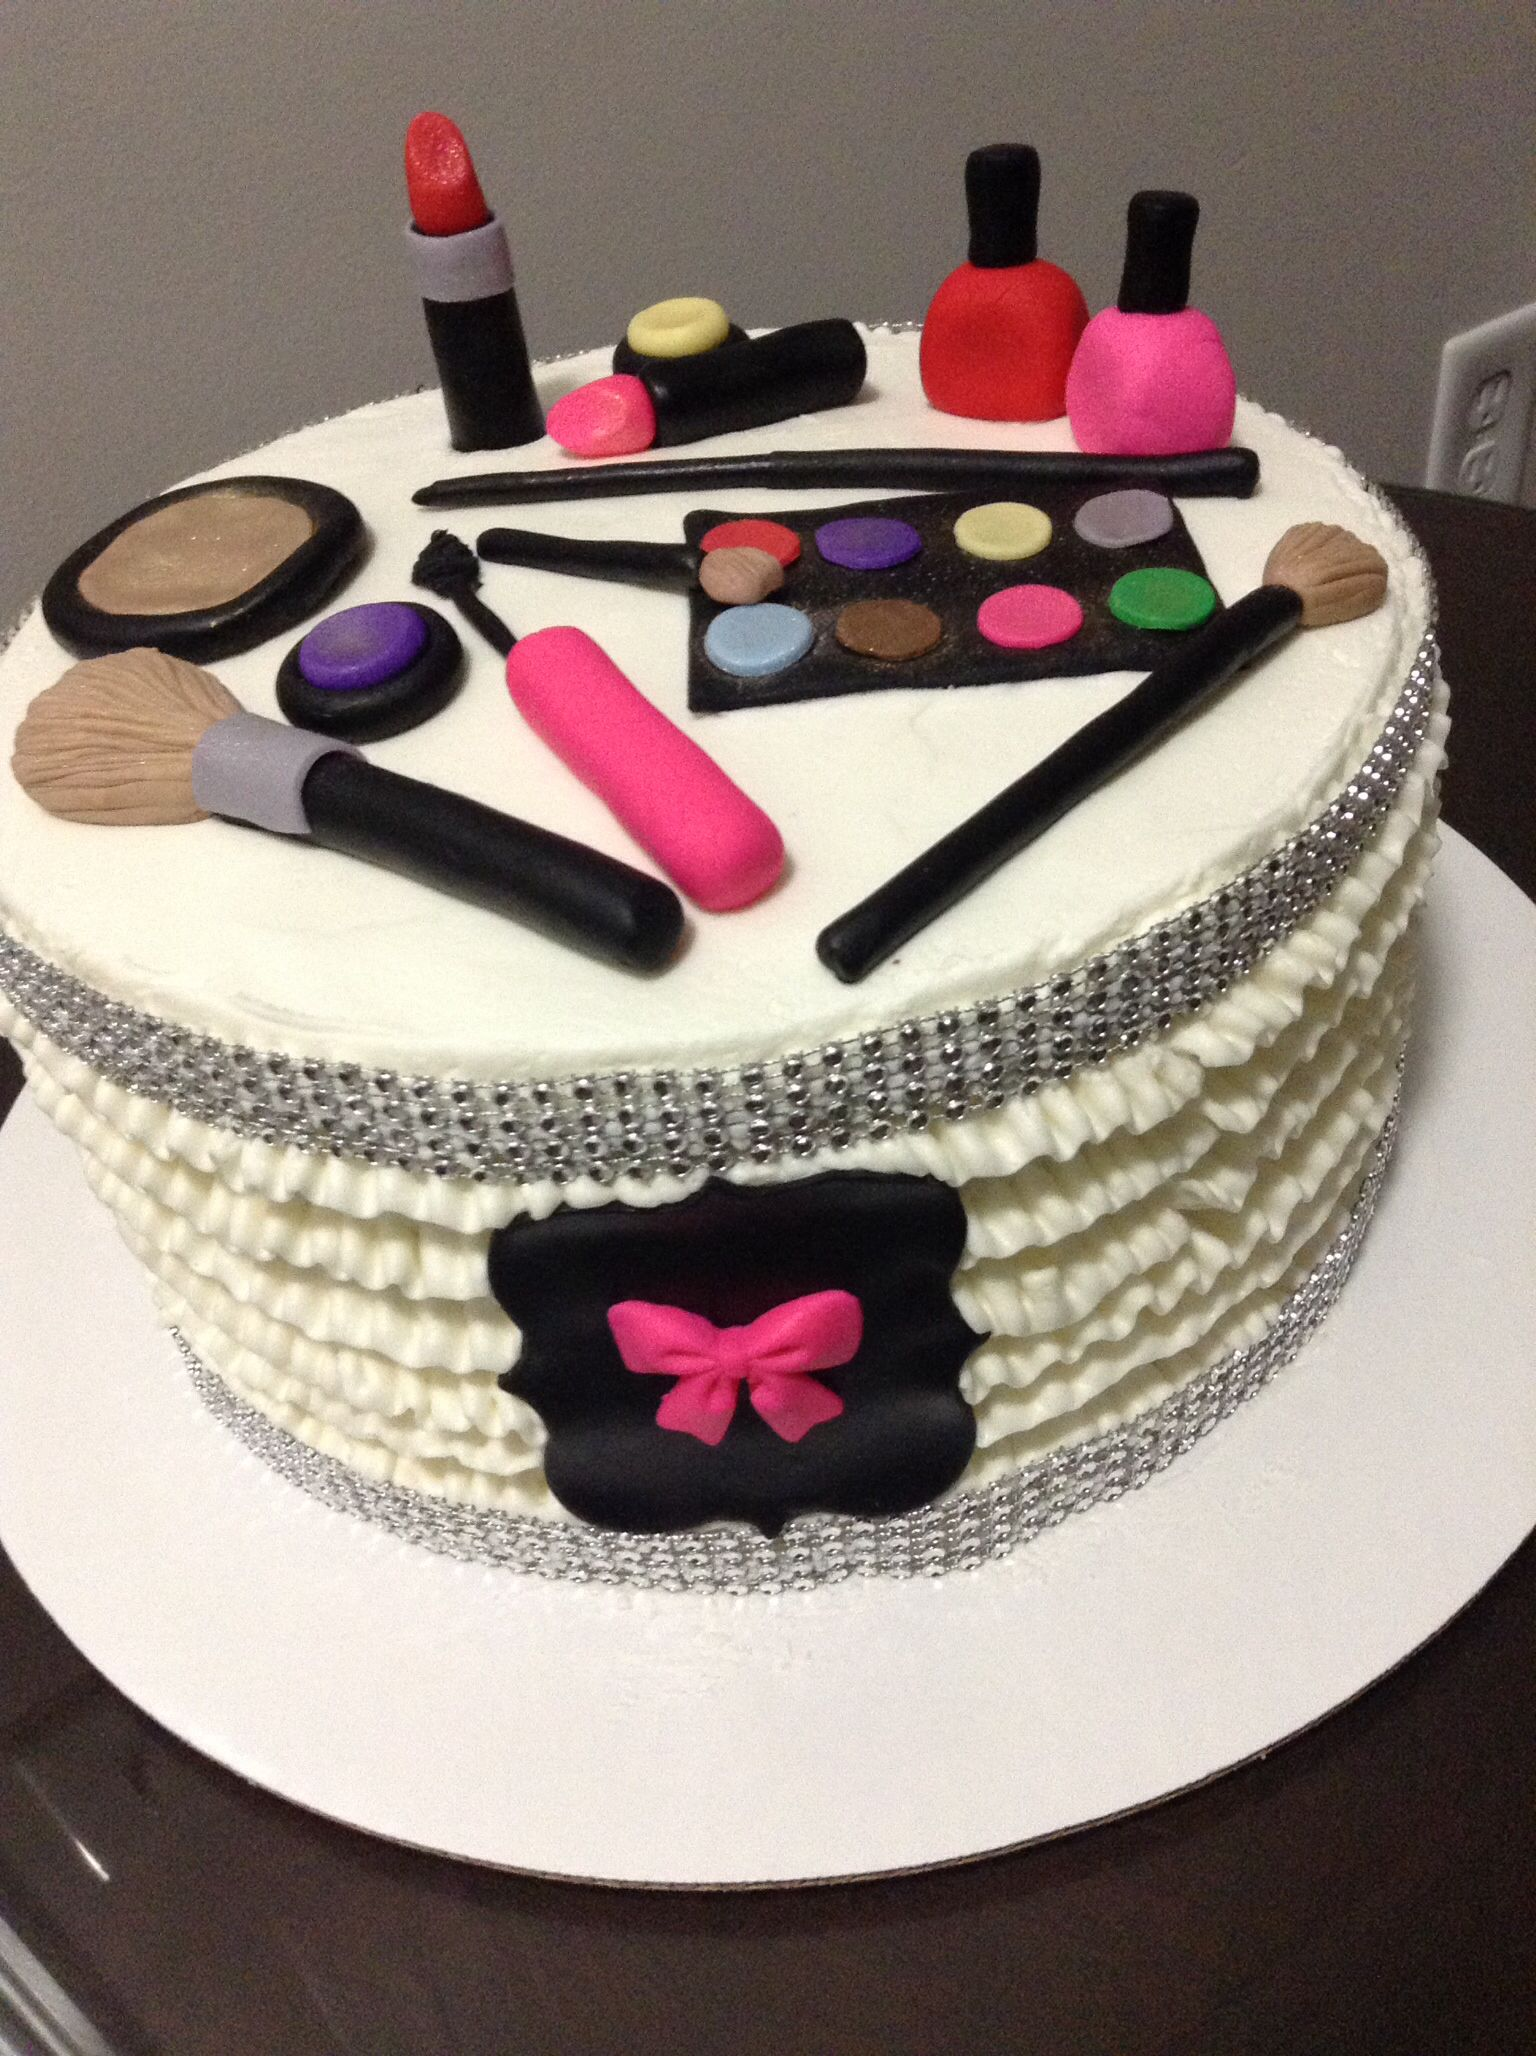 Makeup cake Cakes Pinterest Makeup cakes and Cake